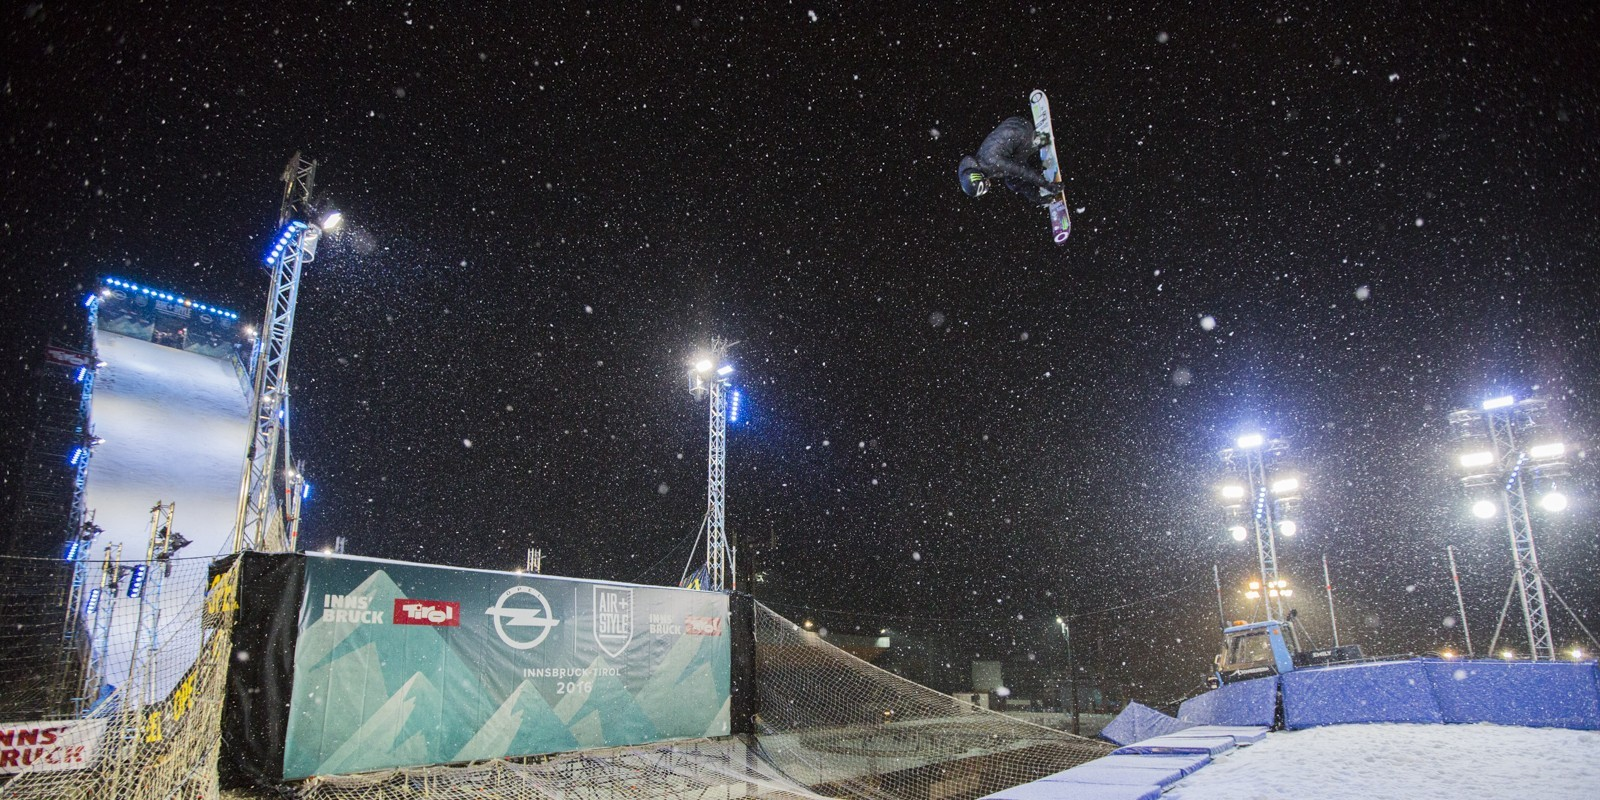 Sven Thorgren at the 2016 Air & Style in Innsbruck, Austria